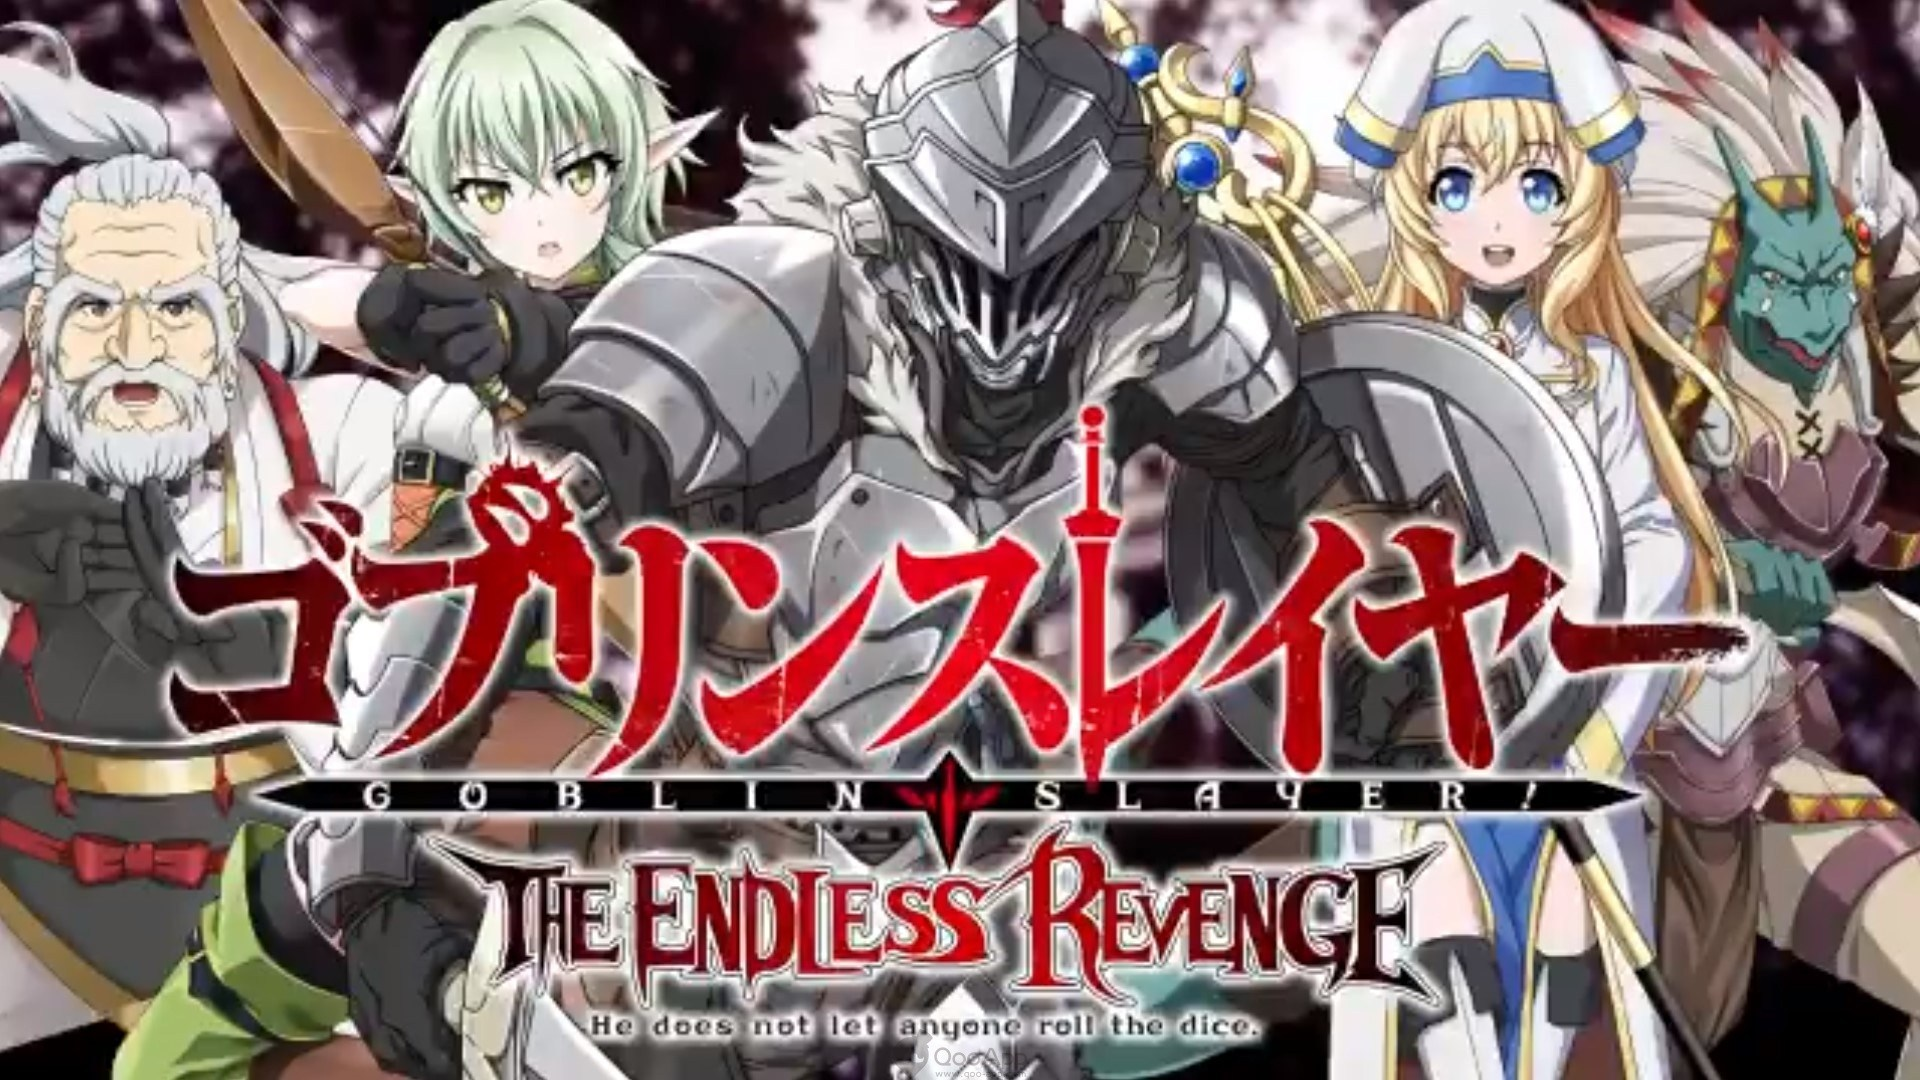 Sudah Gak Laku? Game Mobile Anime 'Goblin Slayer: The Endless Revenge' Akan Ditutup